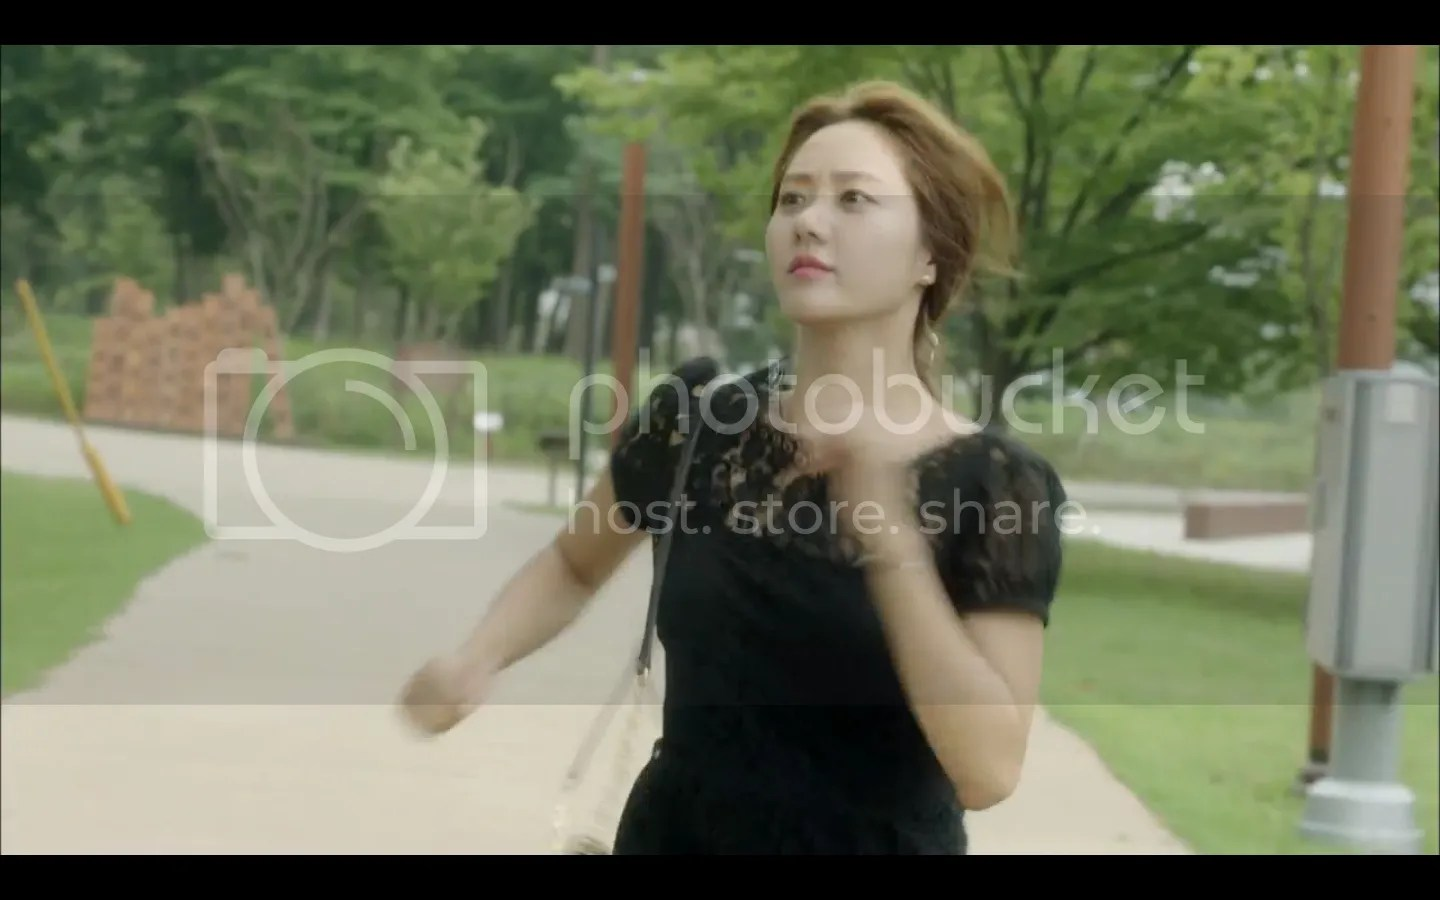 marriage not dating episode 3 subtitle indonesia legend